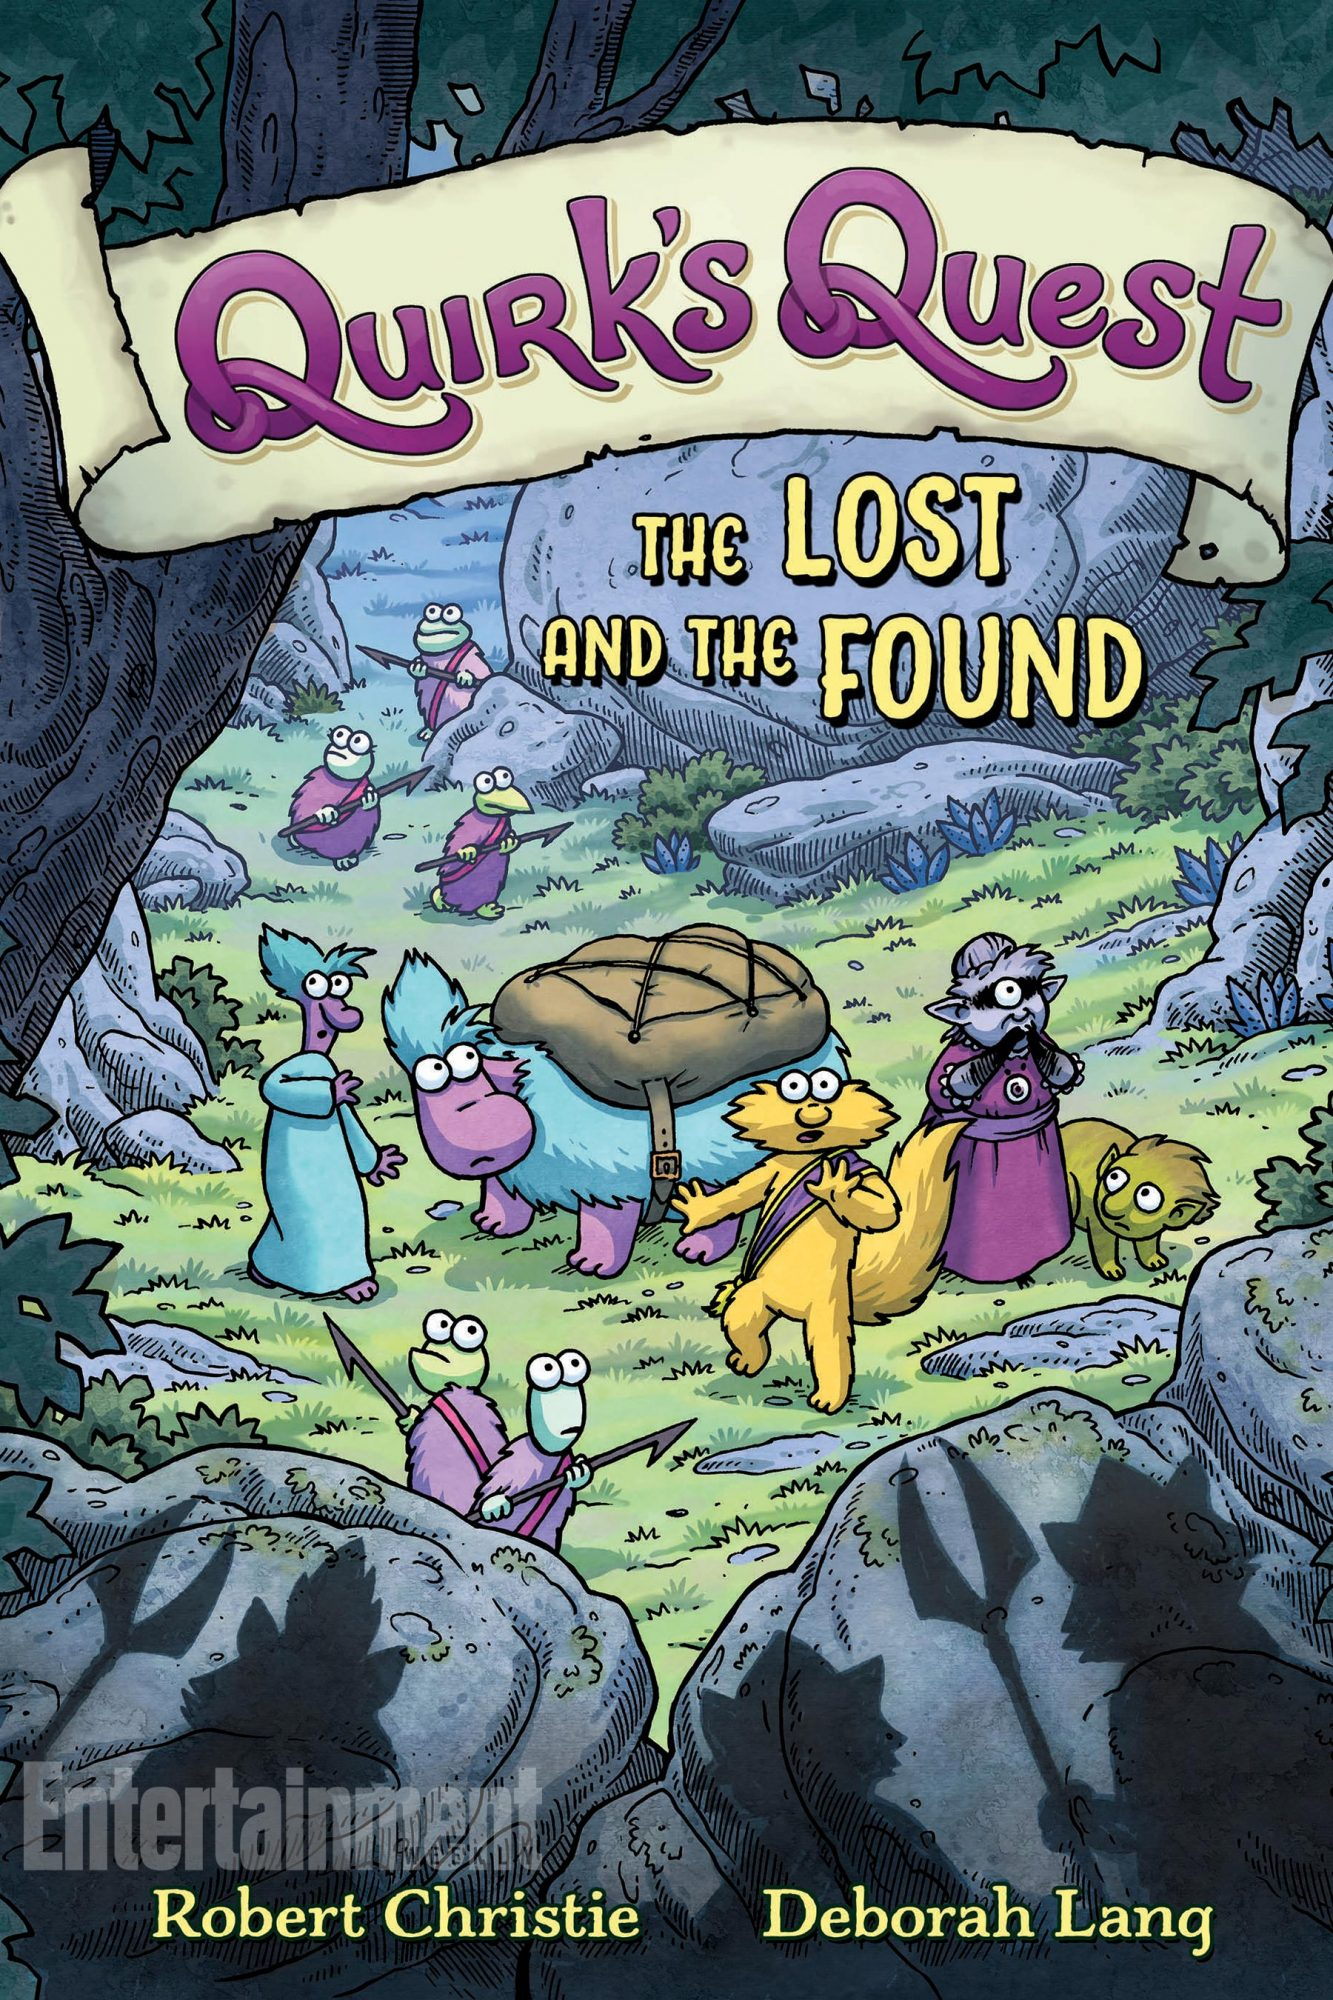 June 26, 2018                       Quirk's Quest: The Lost and the Found by Robert Christie and Deborah Lang